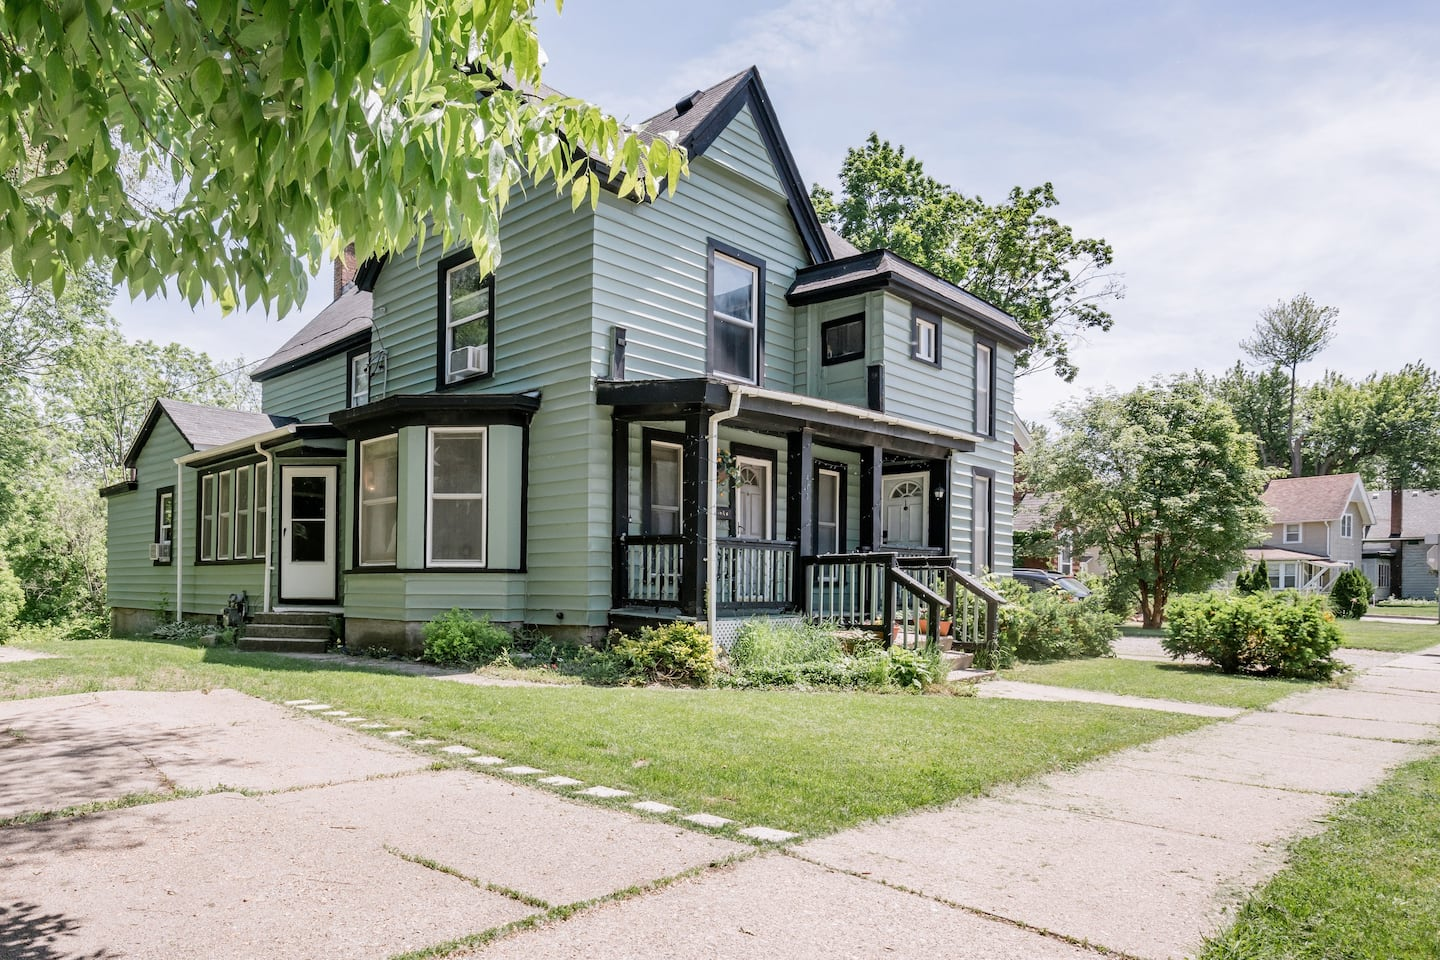 Historic Home near Downtown Ypsilanti - Best Airbnbs in Michigan